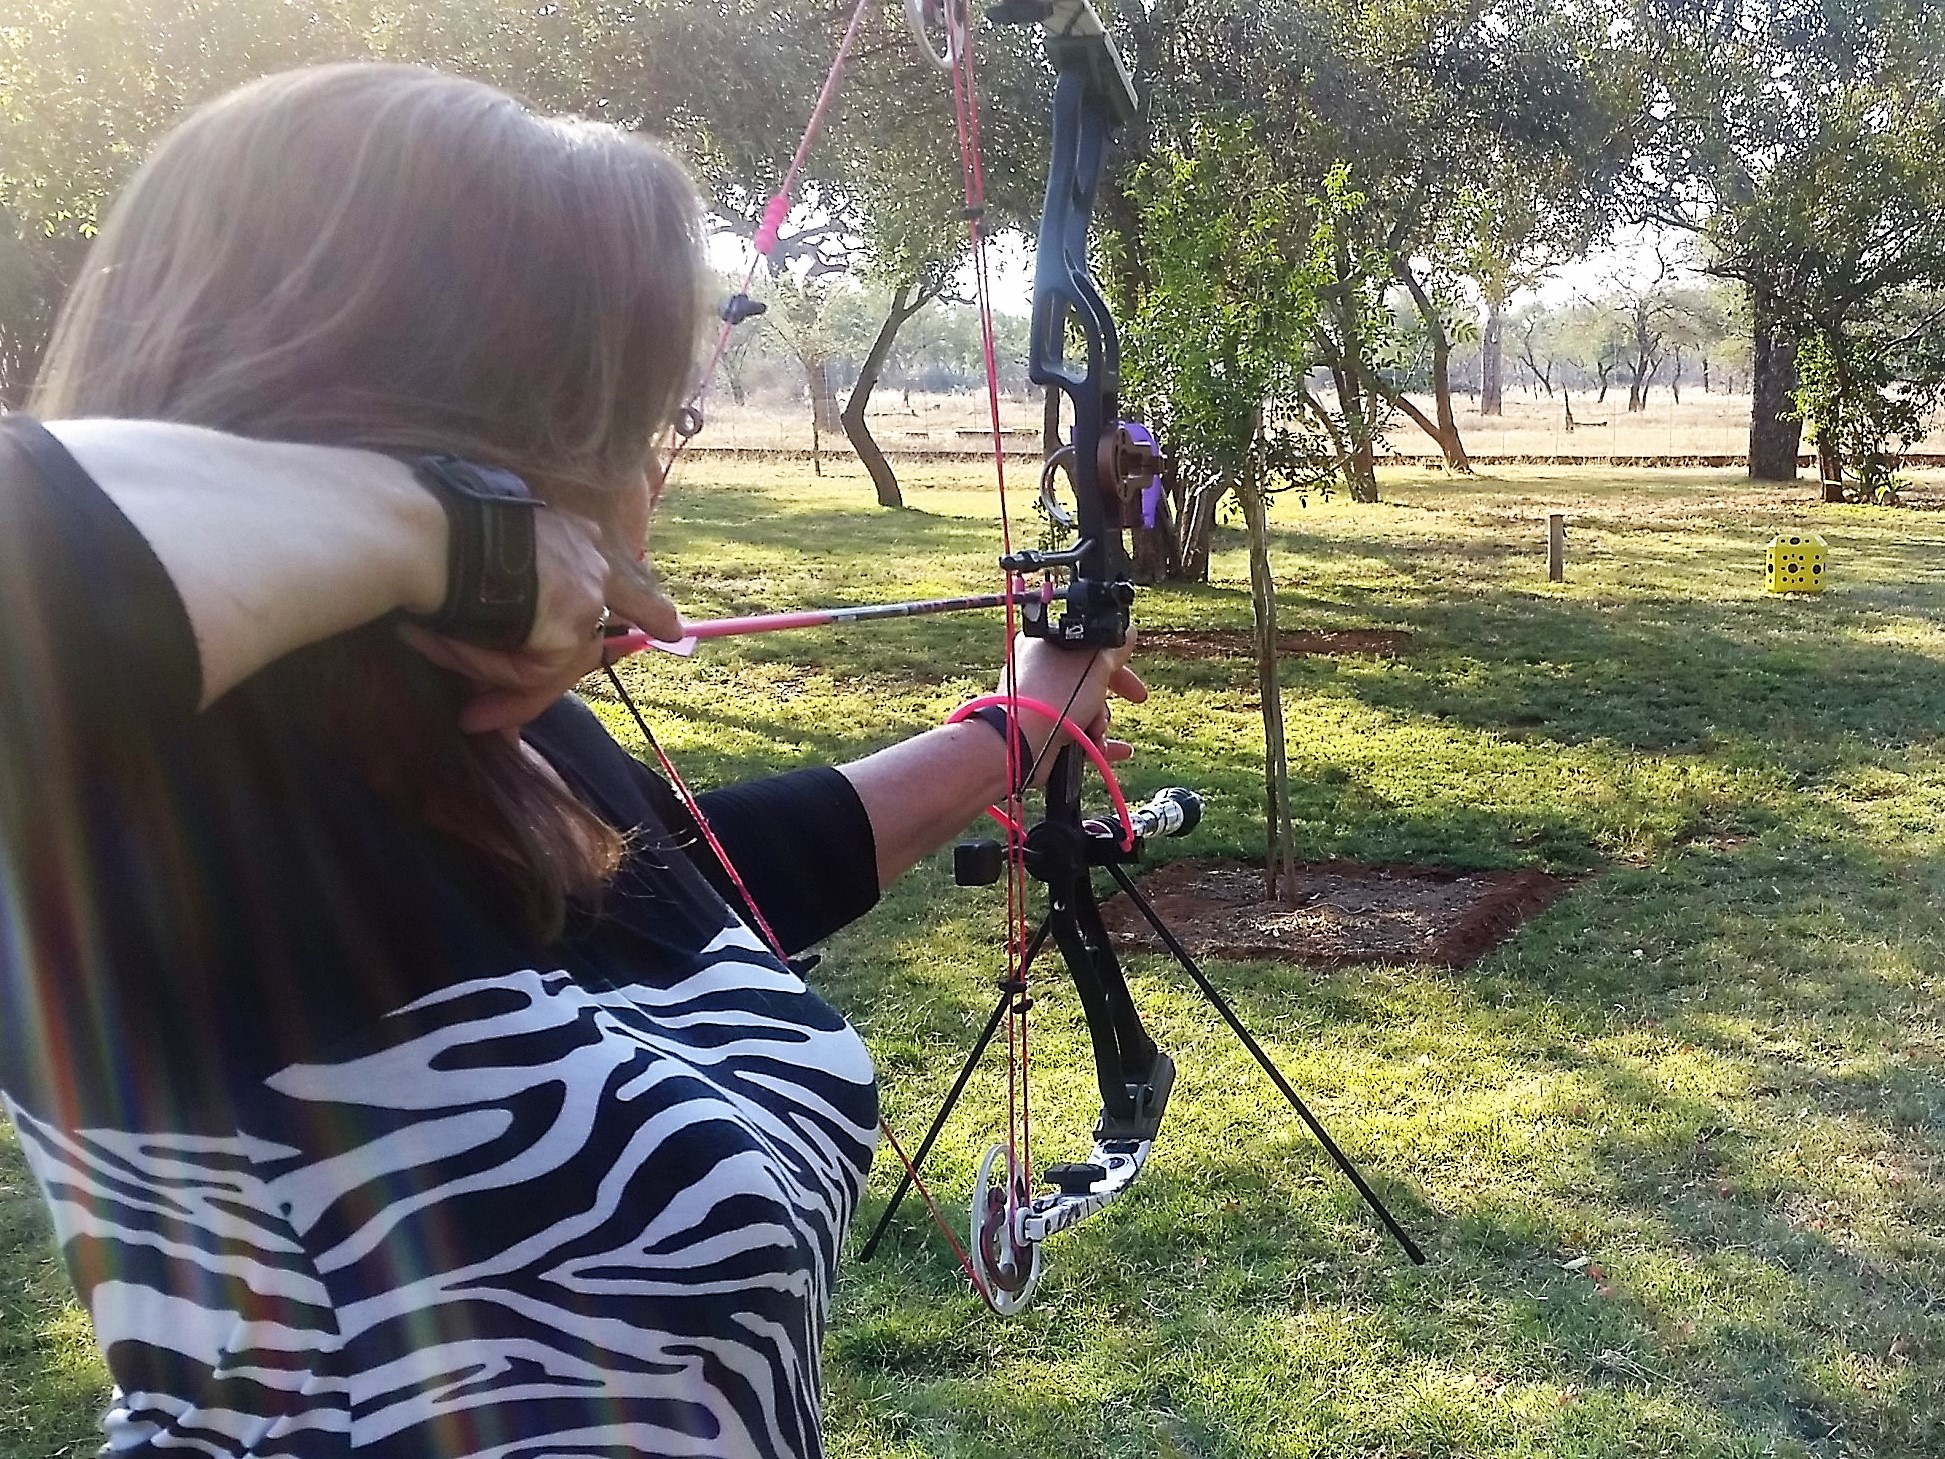 Anne O'Leary arrives in Thabazimbi Province in South Africa to unpack her Elite Archery bow to assure shot accuracy.